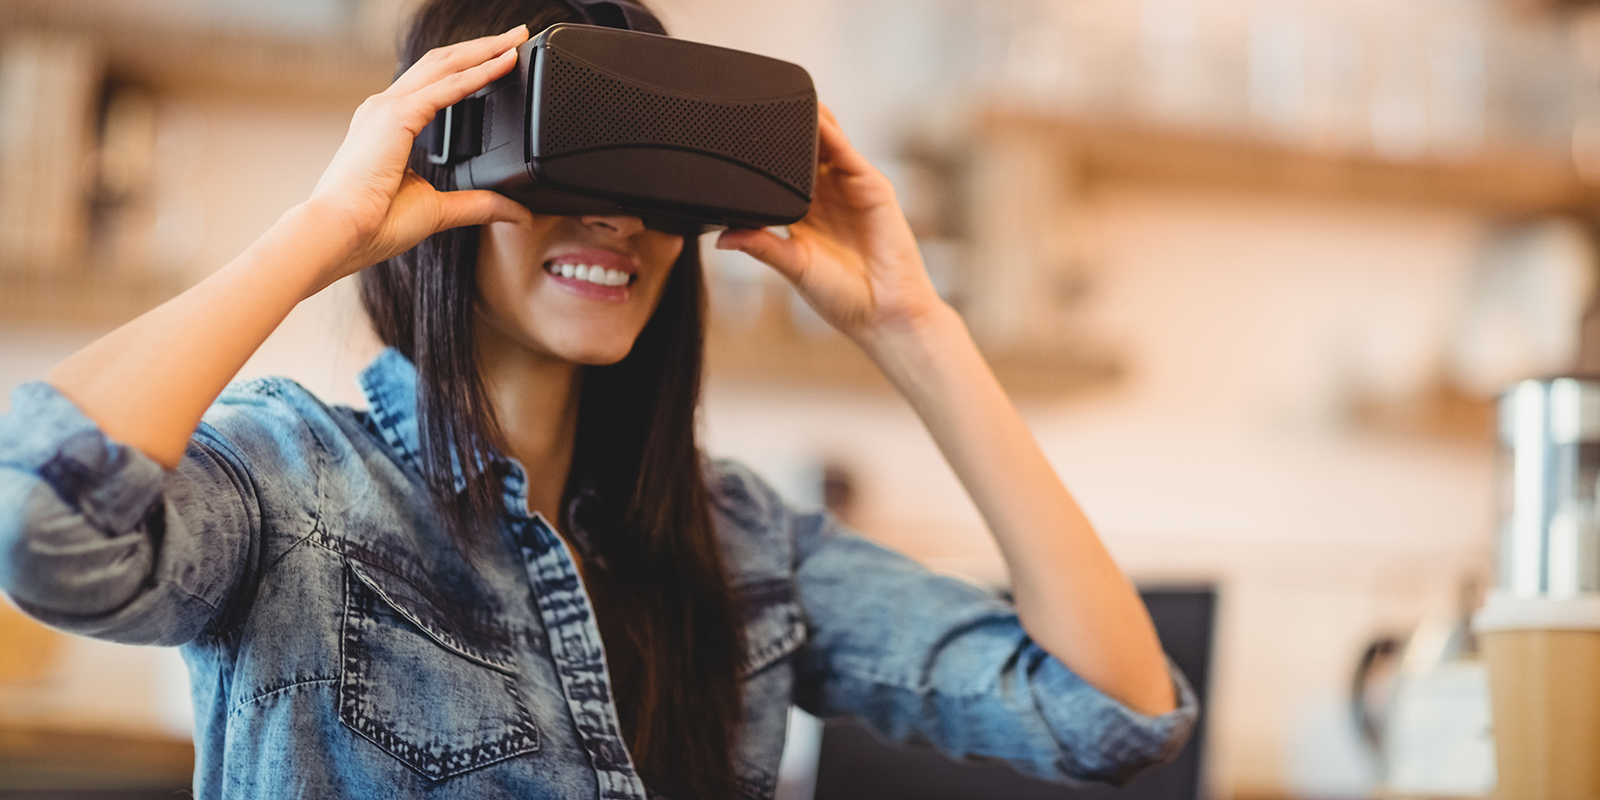 Young-woman-using-the-virtual-reality-headset_1600x800